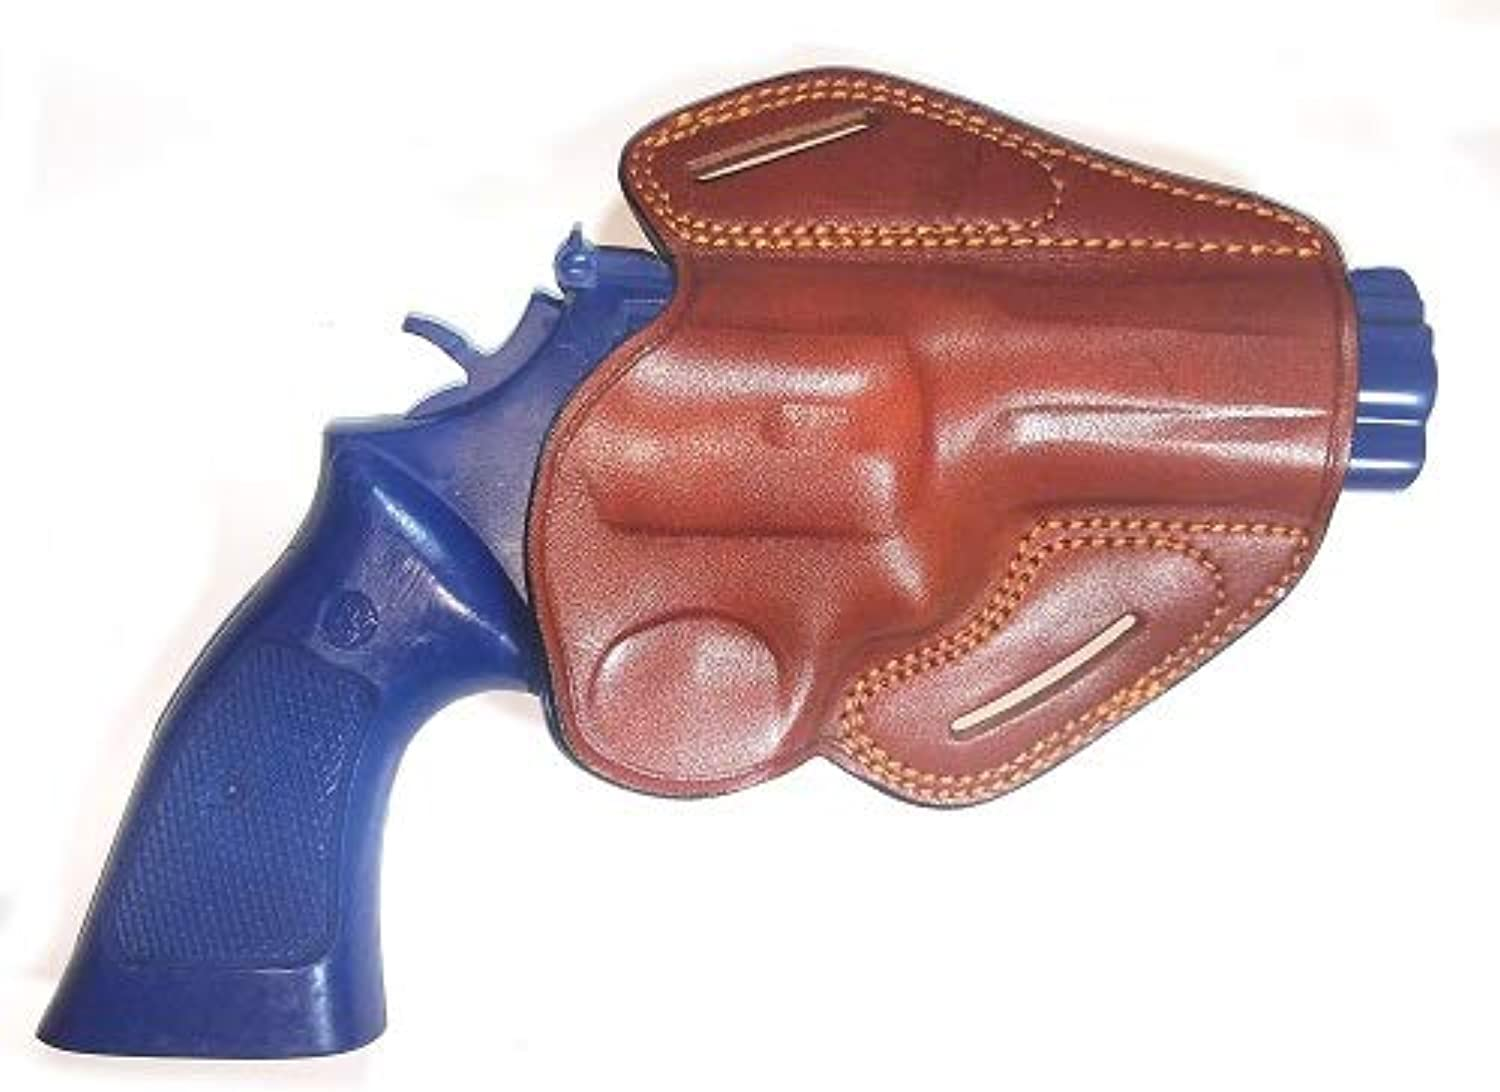 Prestige Smith & Wesson 686 Open TOP OWB Belt Leather Holster